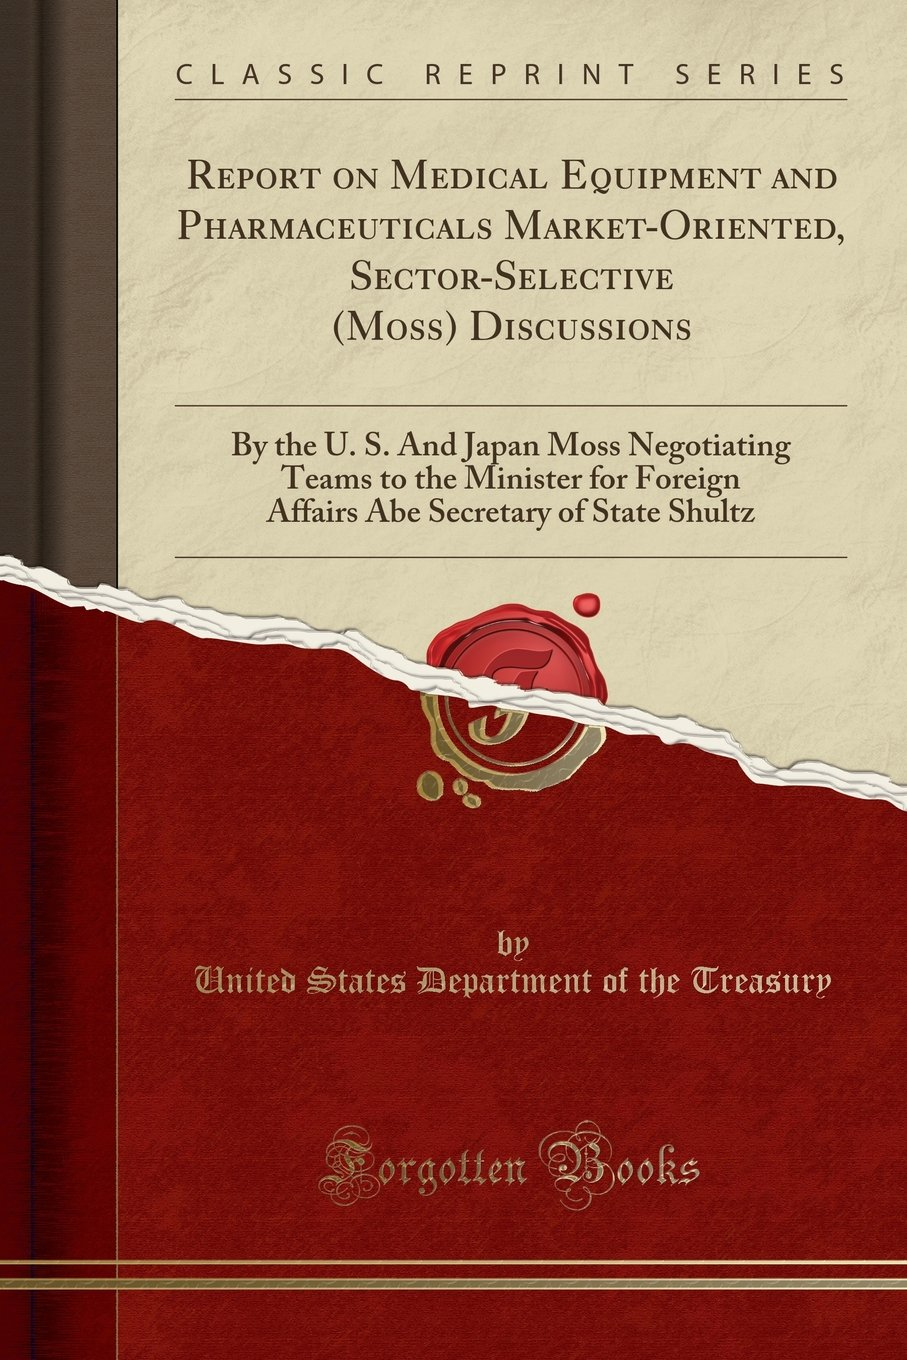 Read Online Report on Medical Equipment and Pharmaceuticals Market-Oriented, Sector-Selective (Moss) Discussions: By the U. S. And Japan Moss Negotiating Teams to ... Secretary of State Shultz (Classic Reprint) Text fb2 ebook